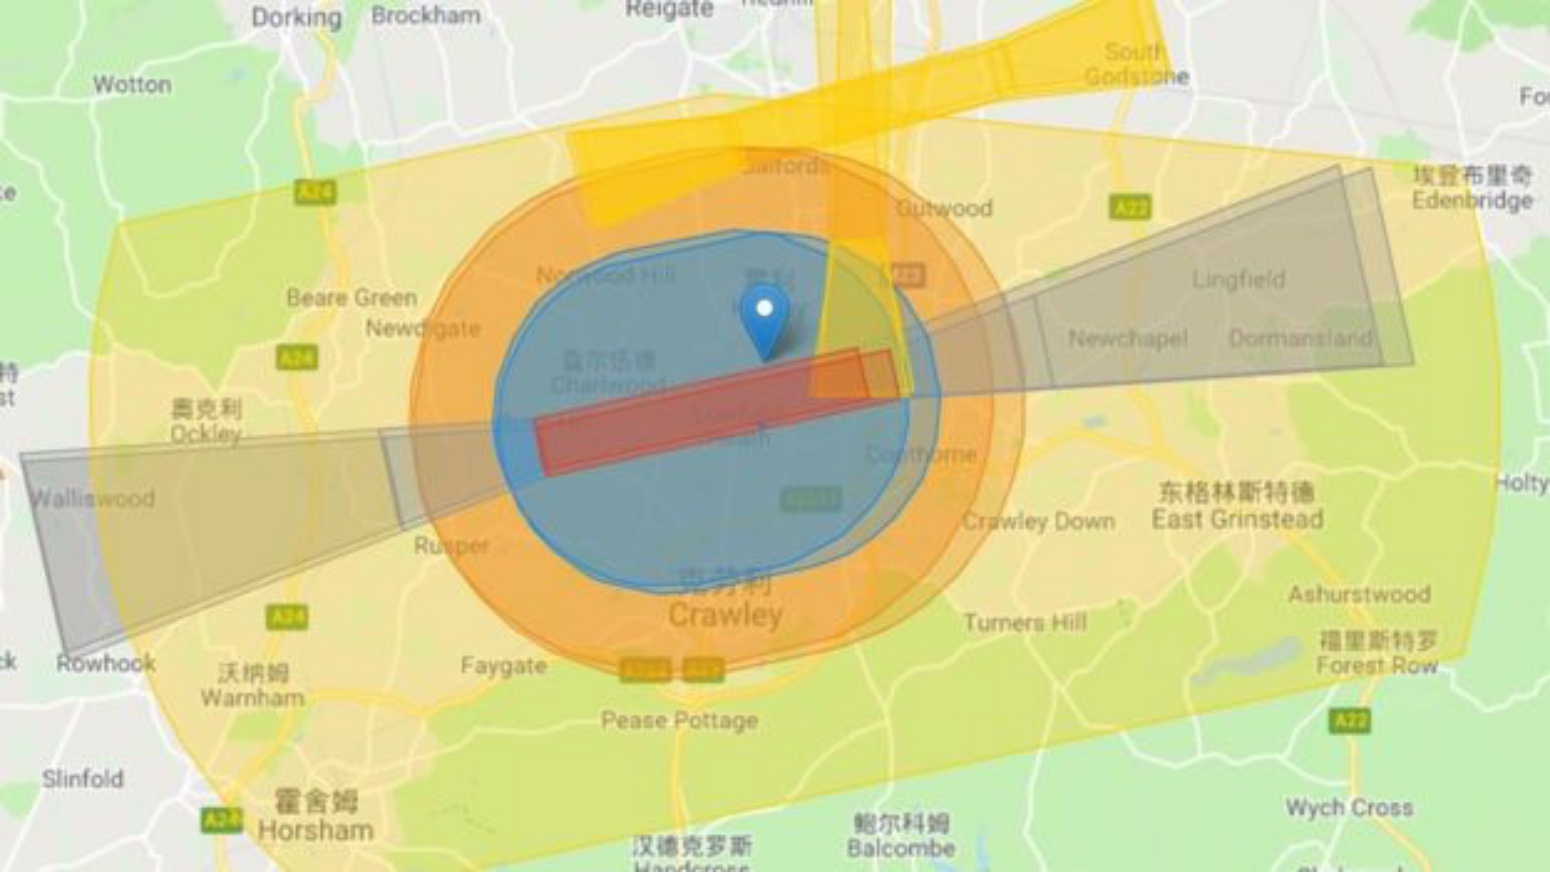 DJI rolls out Geofencing 2 0 to airports in 32 European